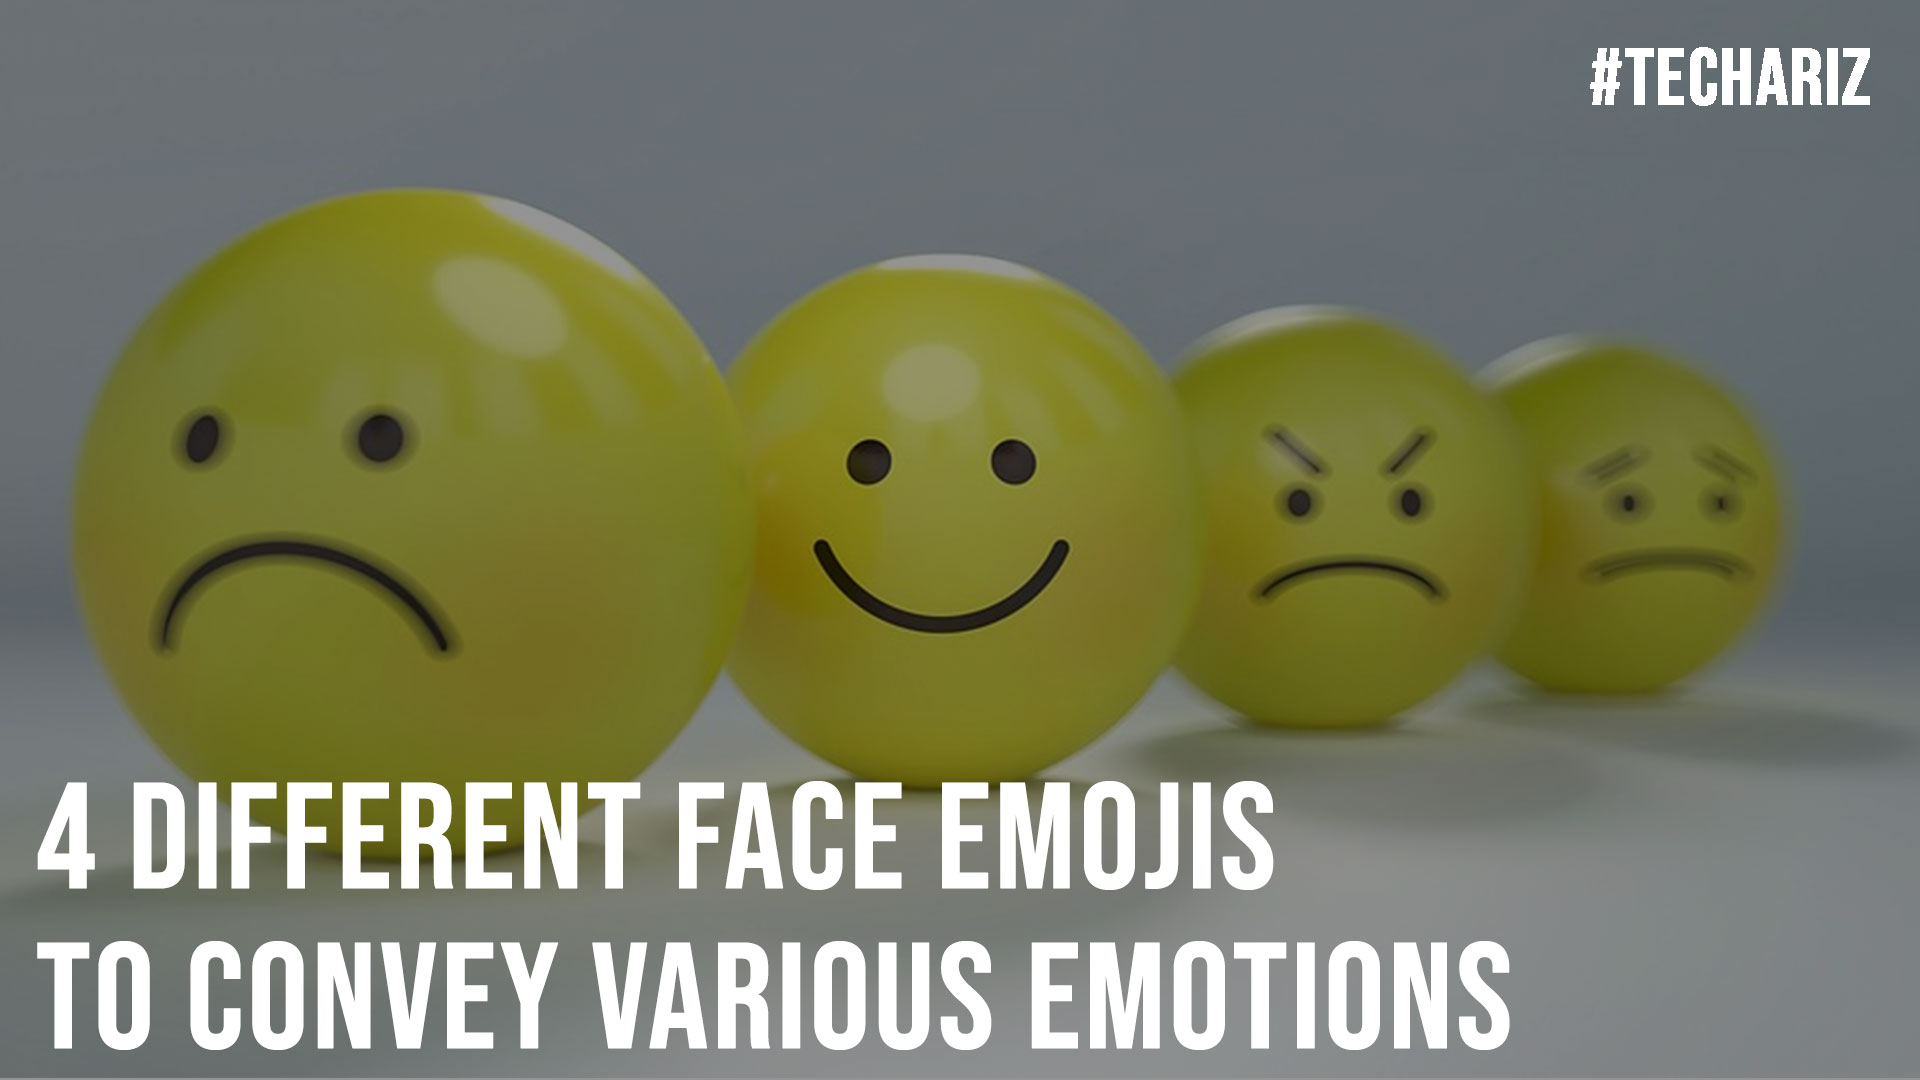 4 Different Face Emojis to Convey Various Emotions